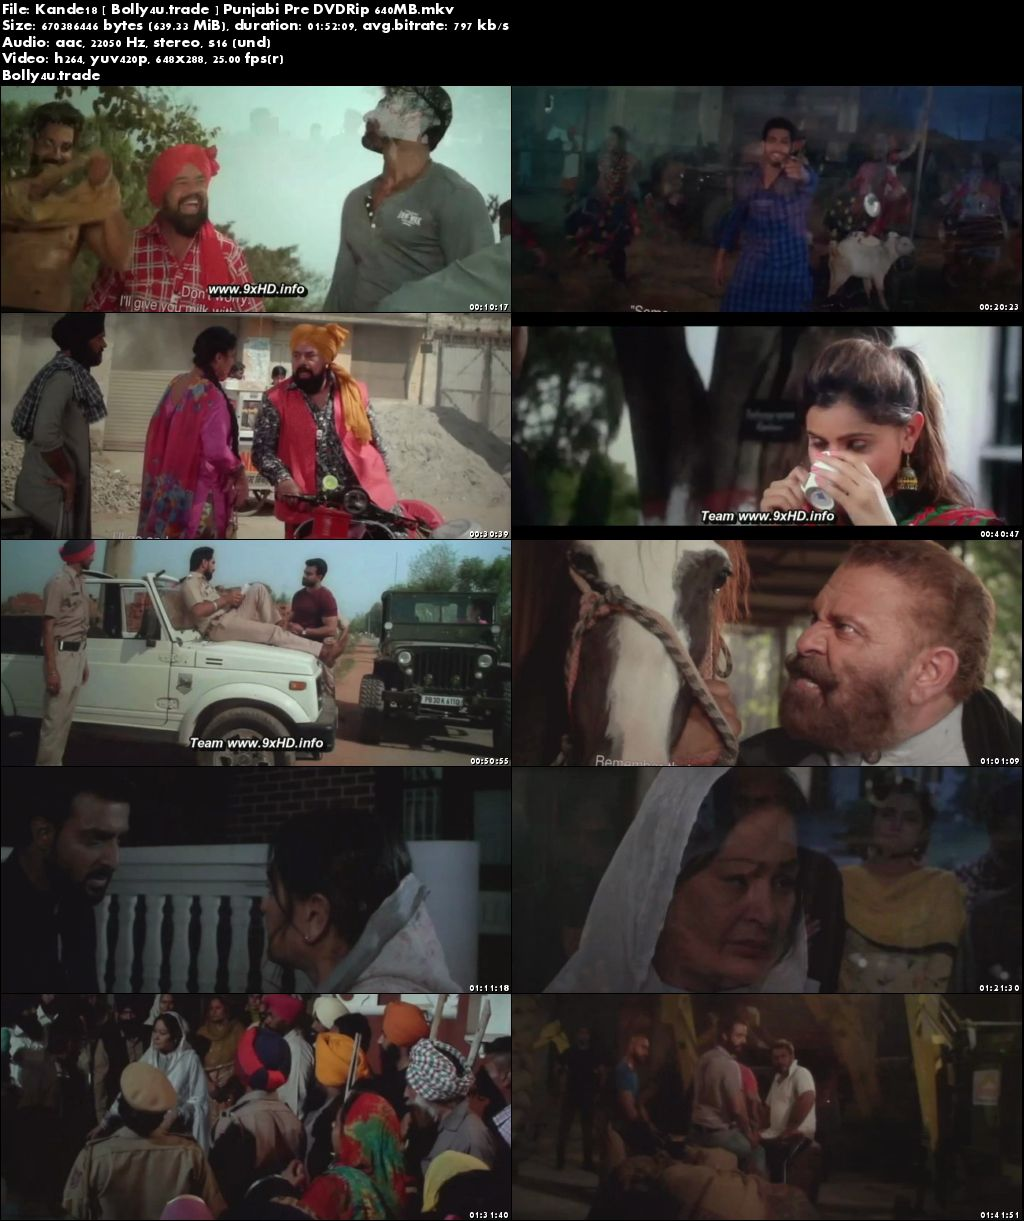 Kande 2018 Pre DVDRip 350Mb Punjabi 480p Download